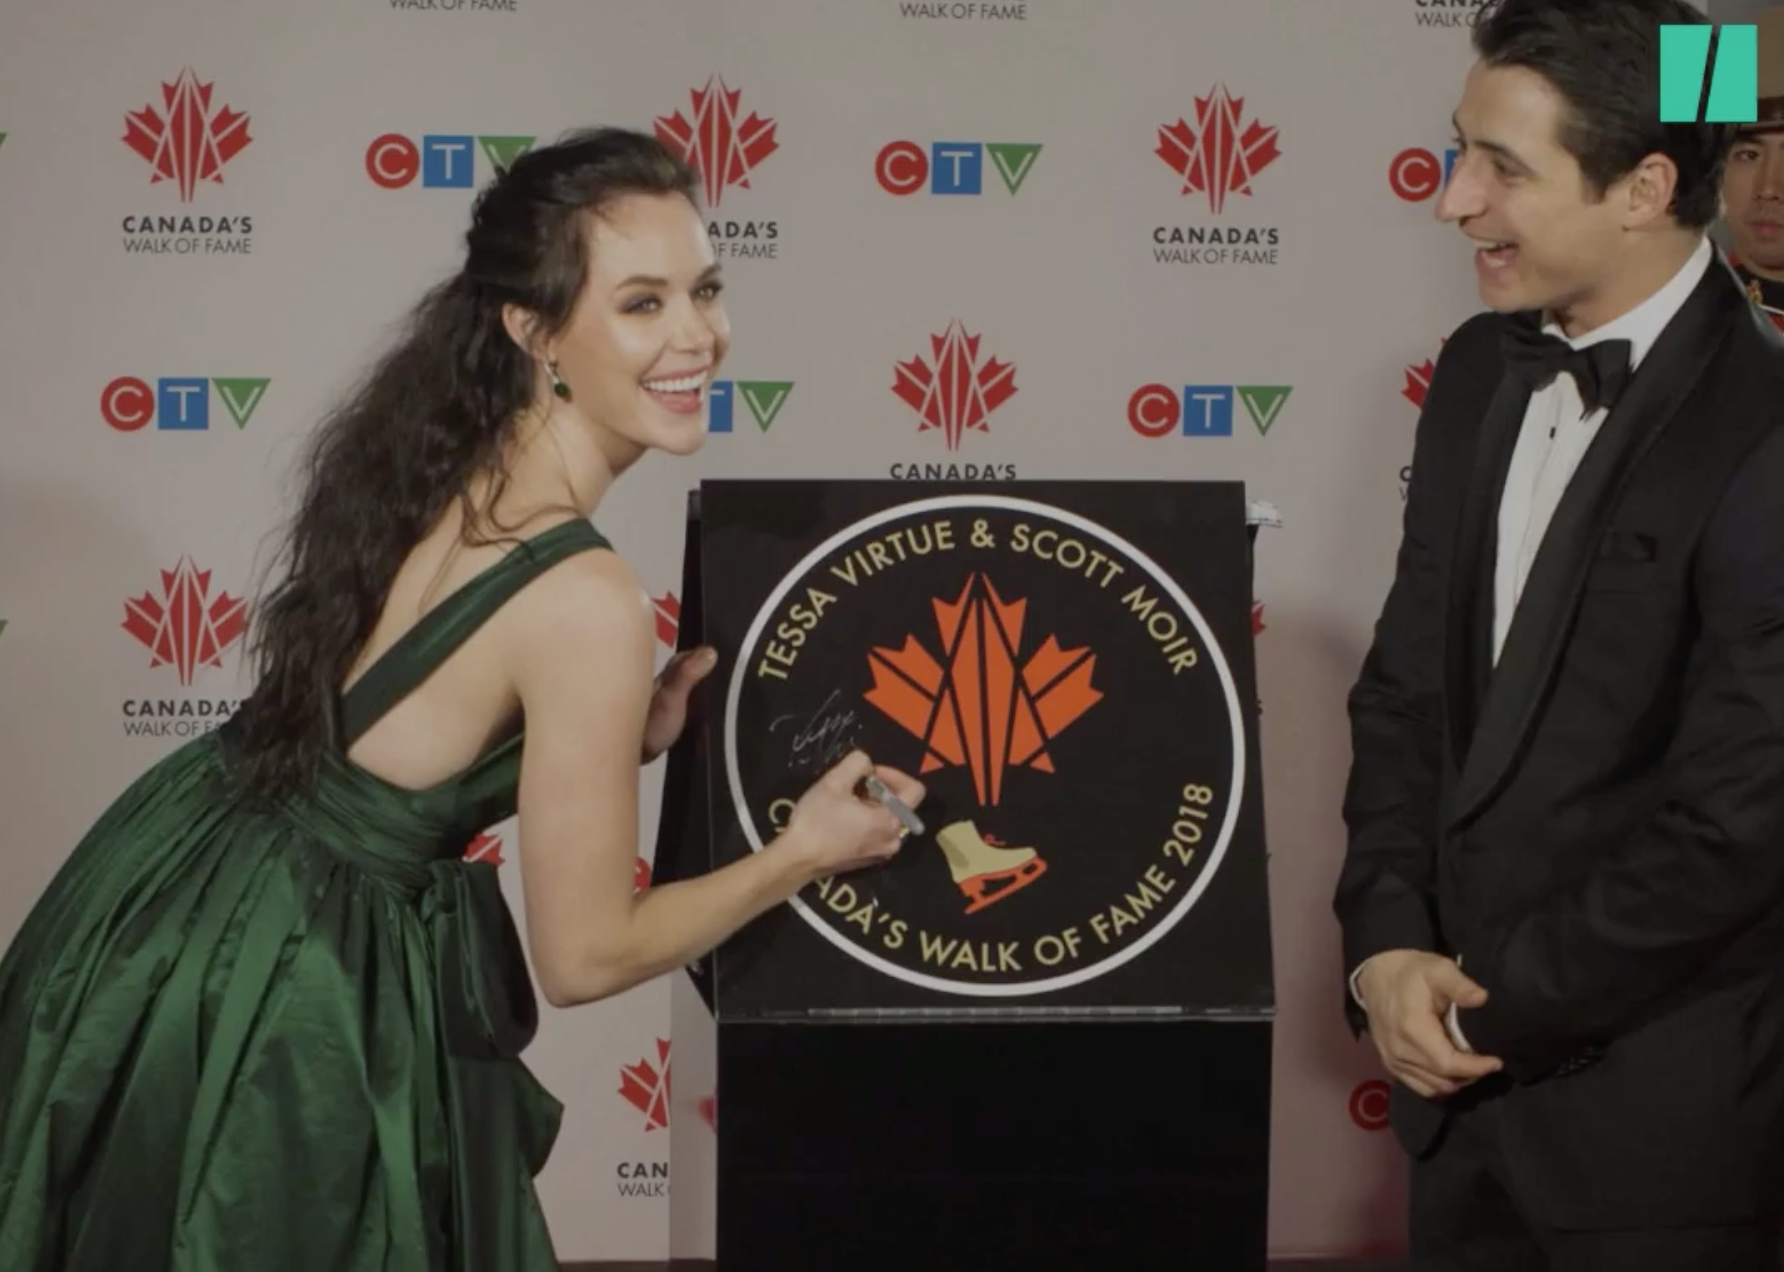 Tessa Virtue and Scott Moir at the Canada's Walk of Fame ceremony (Photo credit:    Huffington Post Canada   )